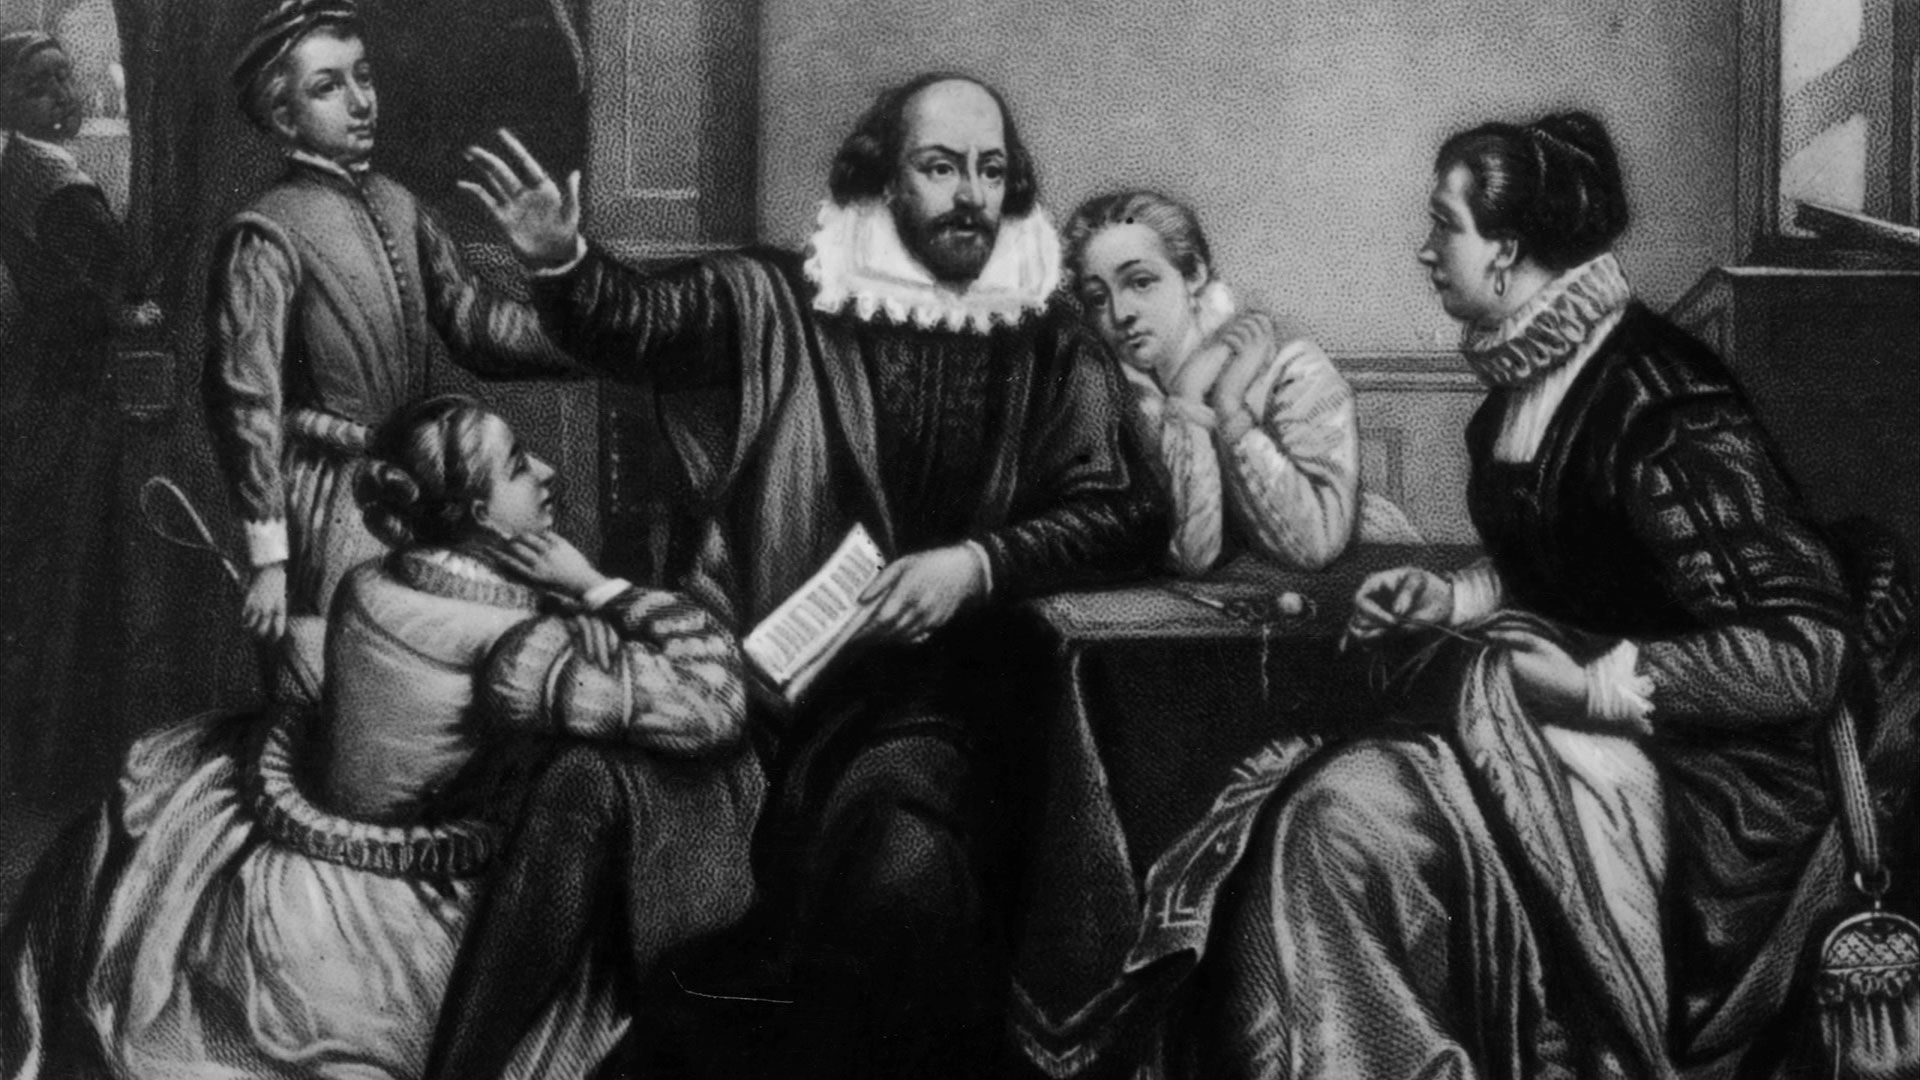 Find out more about the history of William Shakespeare